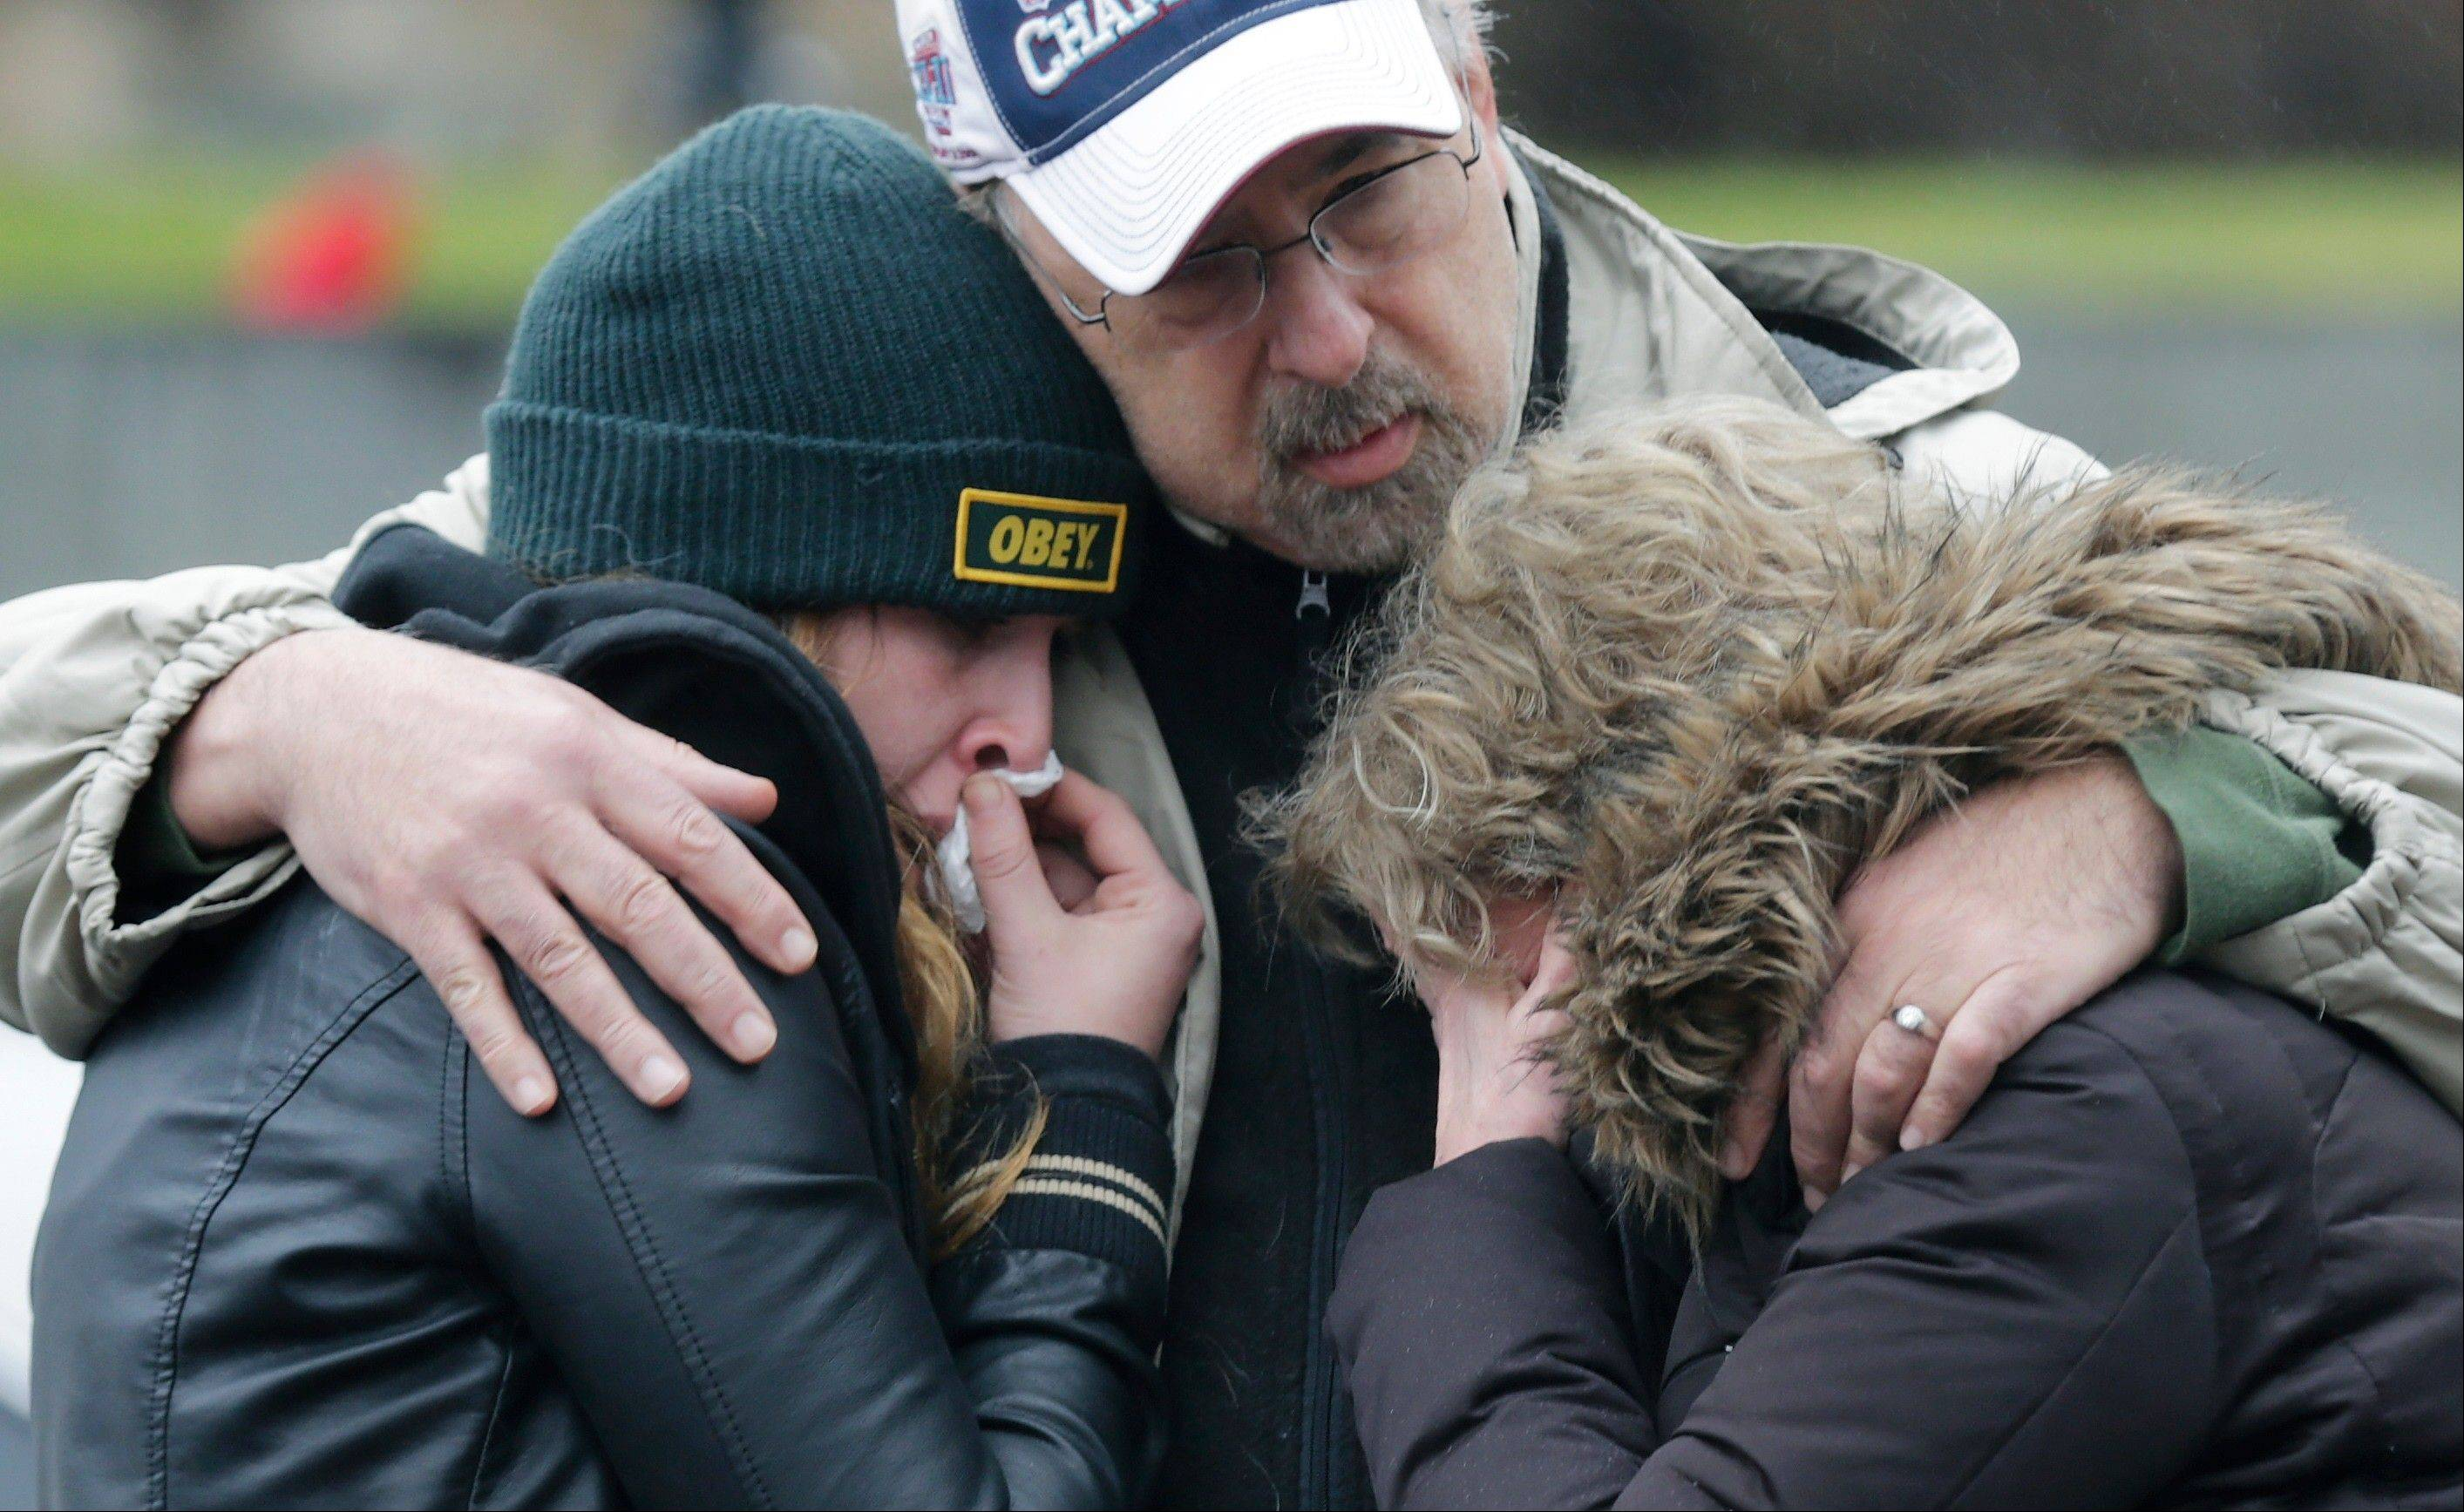 A man clutches two sobbing women at the site of a makeshift memorial for school shooting victims at the village of Sandy Hook in Newtown, Conn., Sunday, Dec. 16, 2012. A gunman opened fire at Sandy Hook Elementary School in the town, killing 26 people, including 20 children before killing himself on Friday.